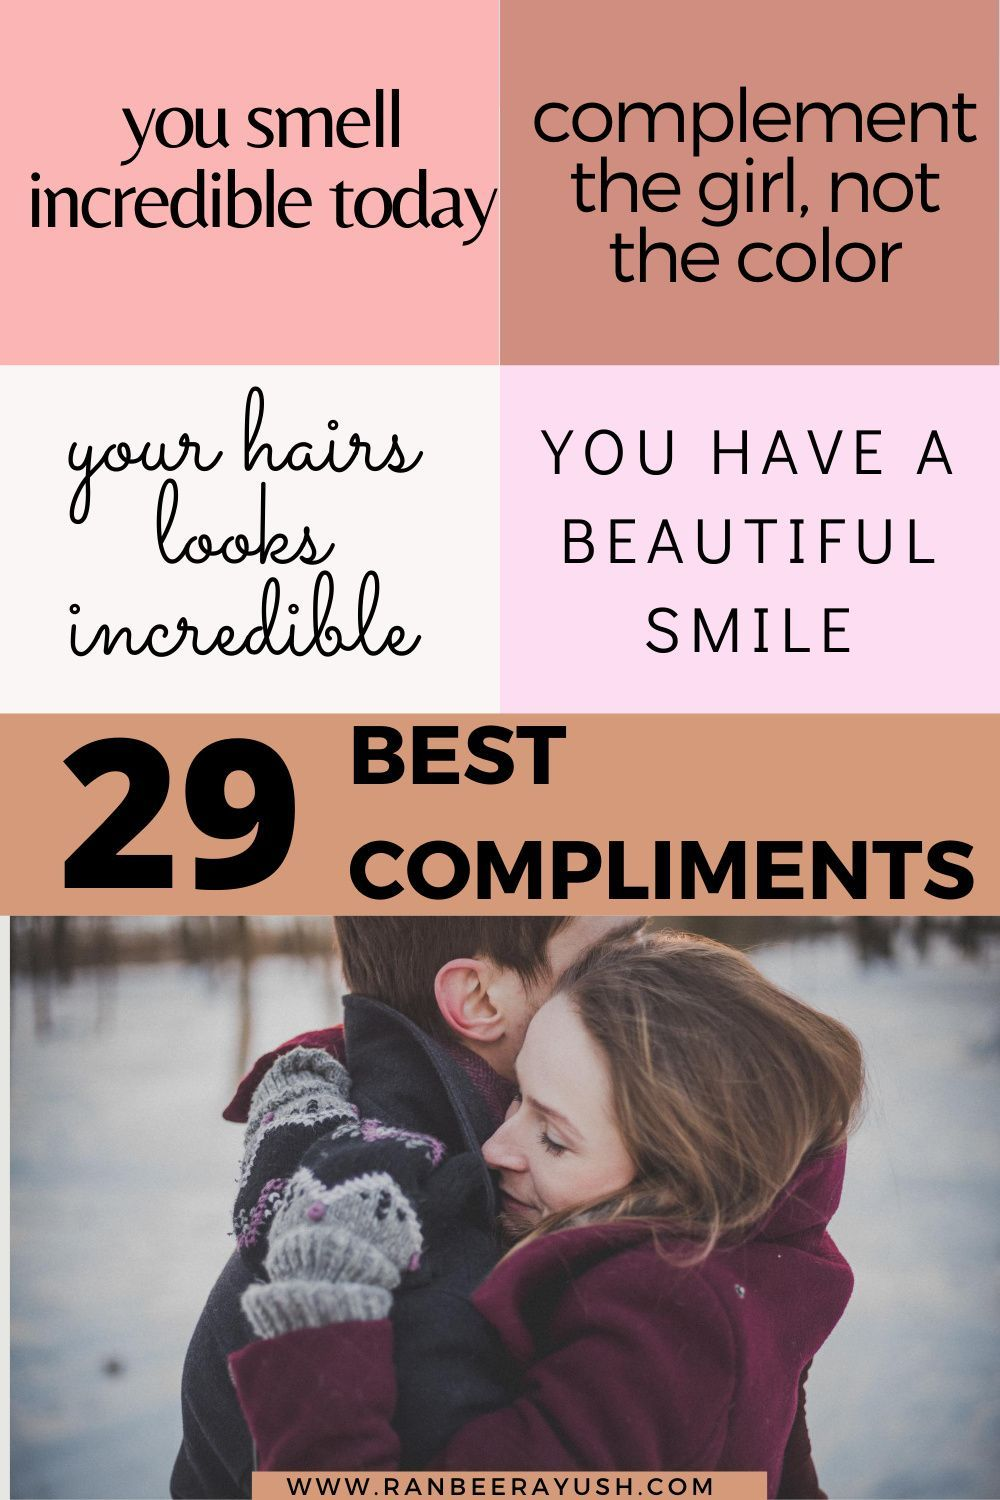 Why guys compliment women